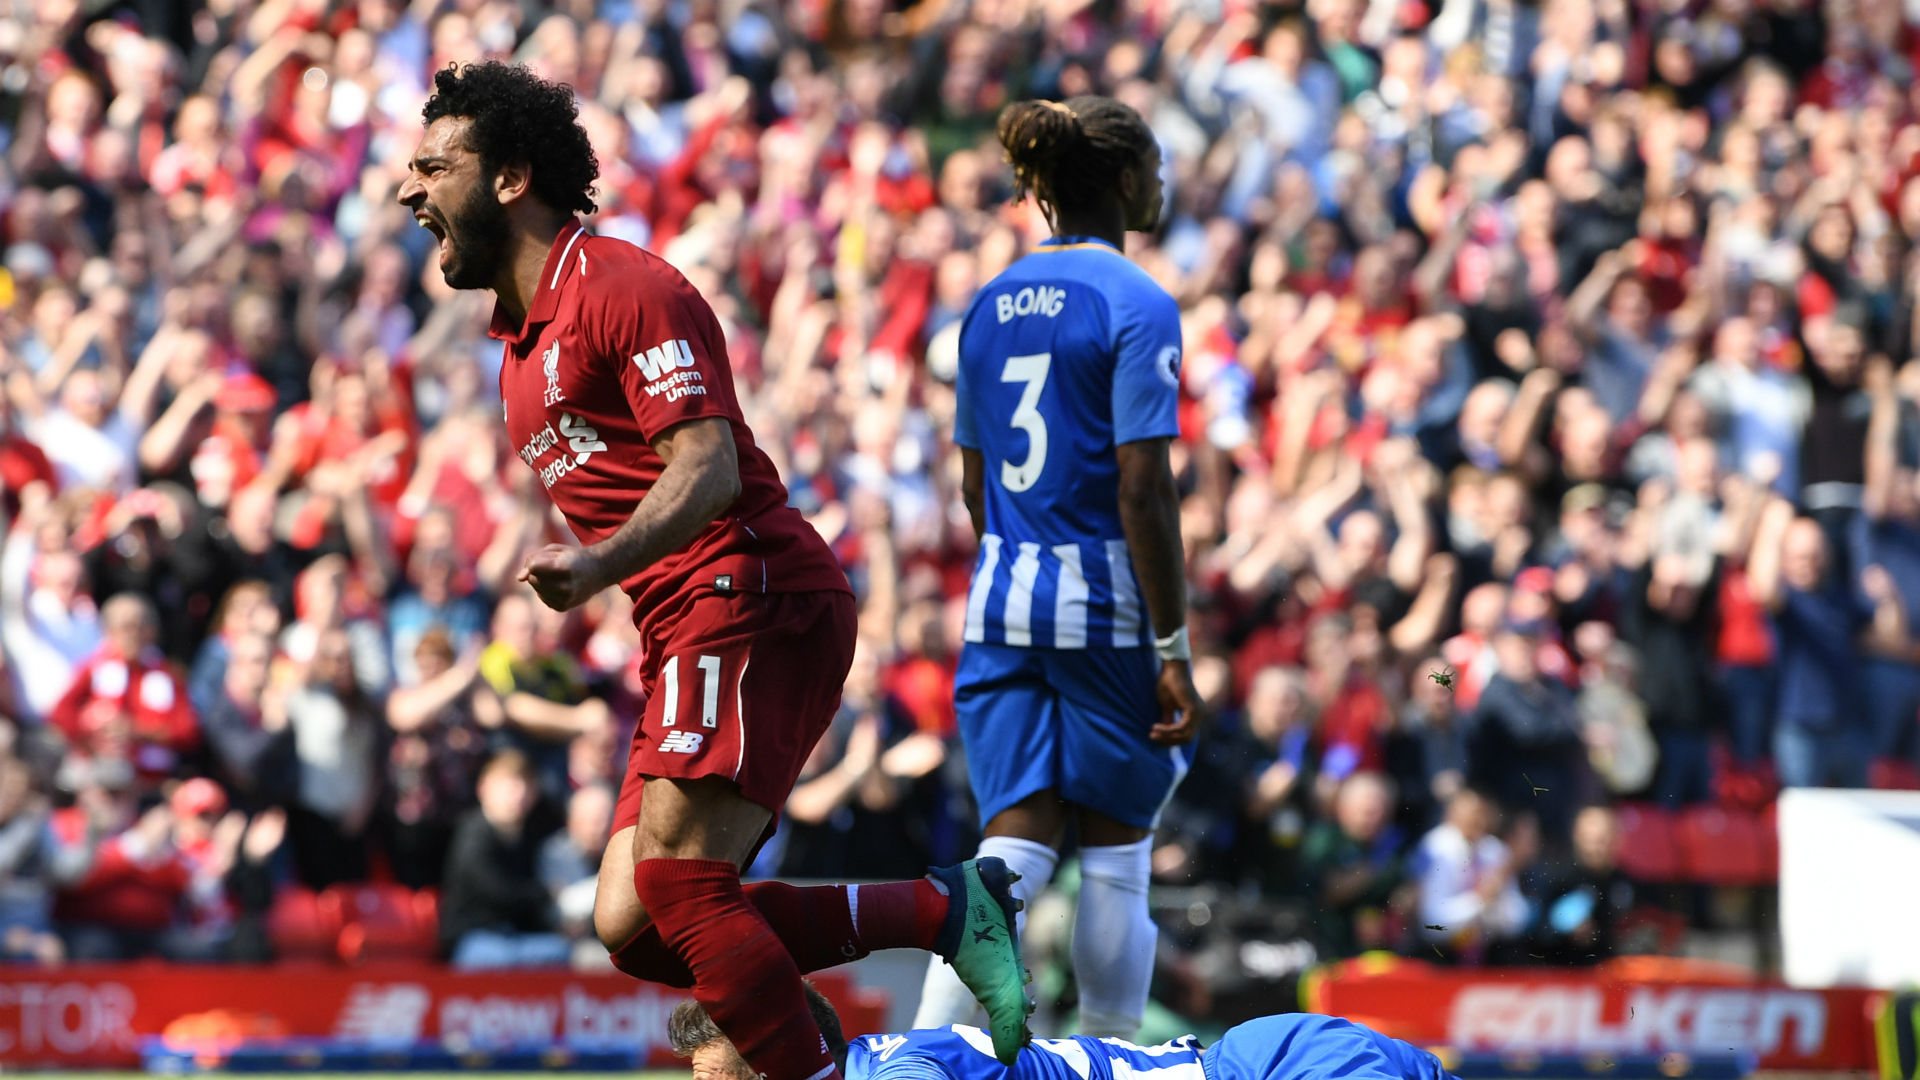 Salah wins Golden Boot as Liverpool qualifies for CL